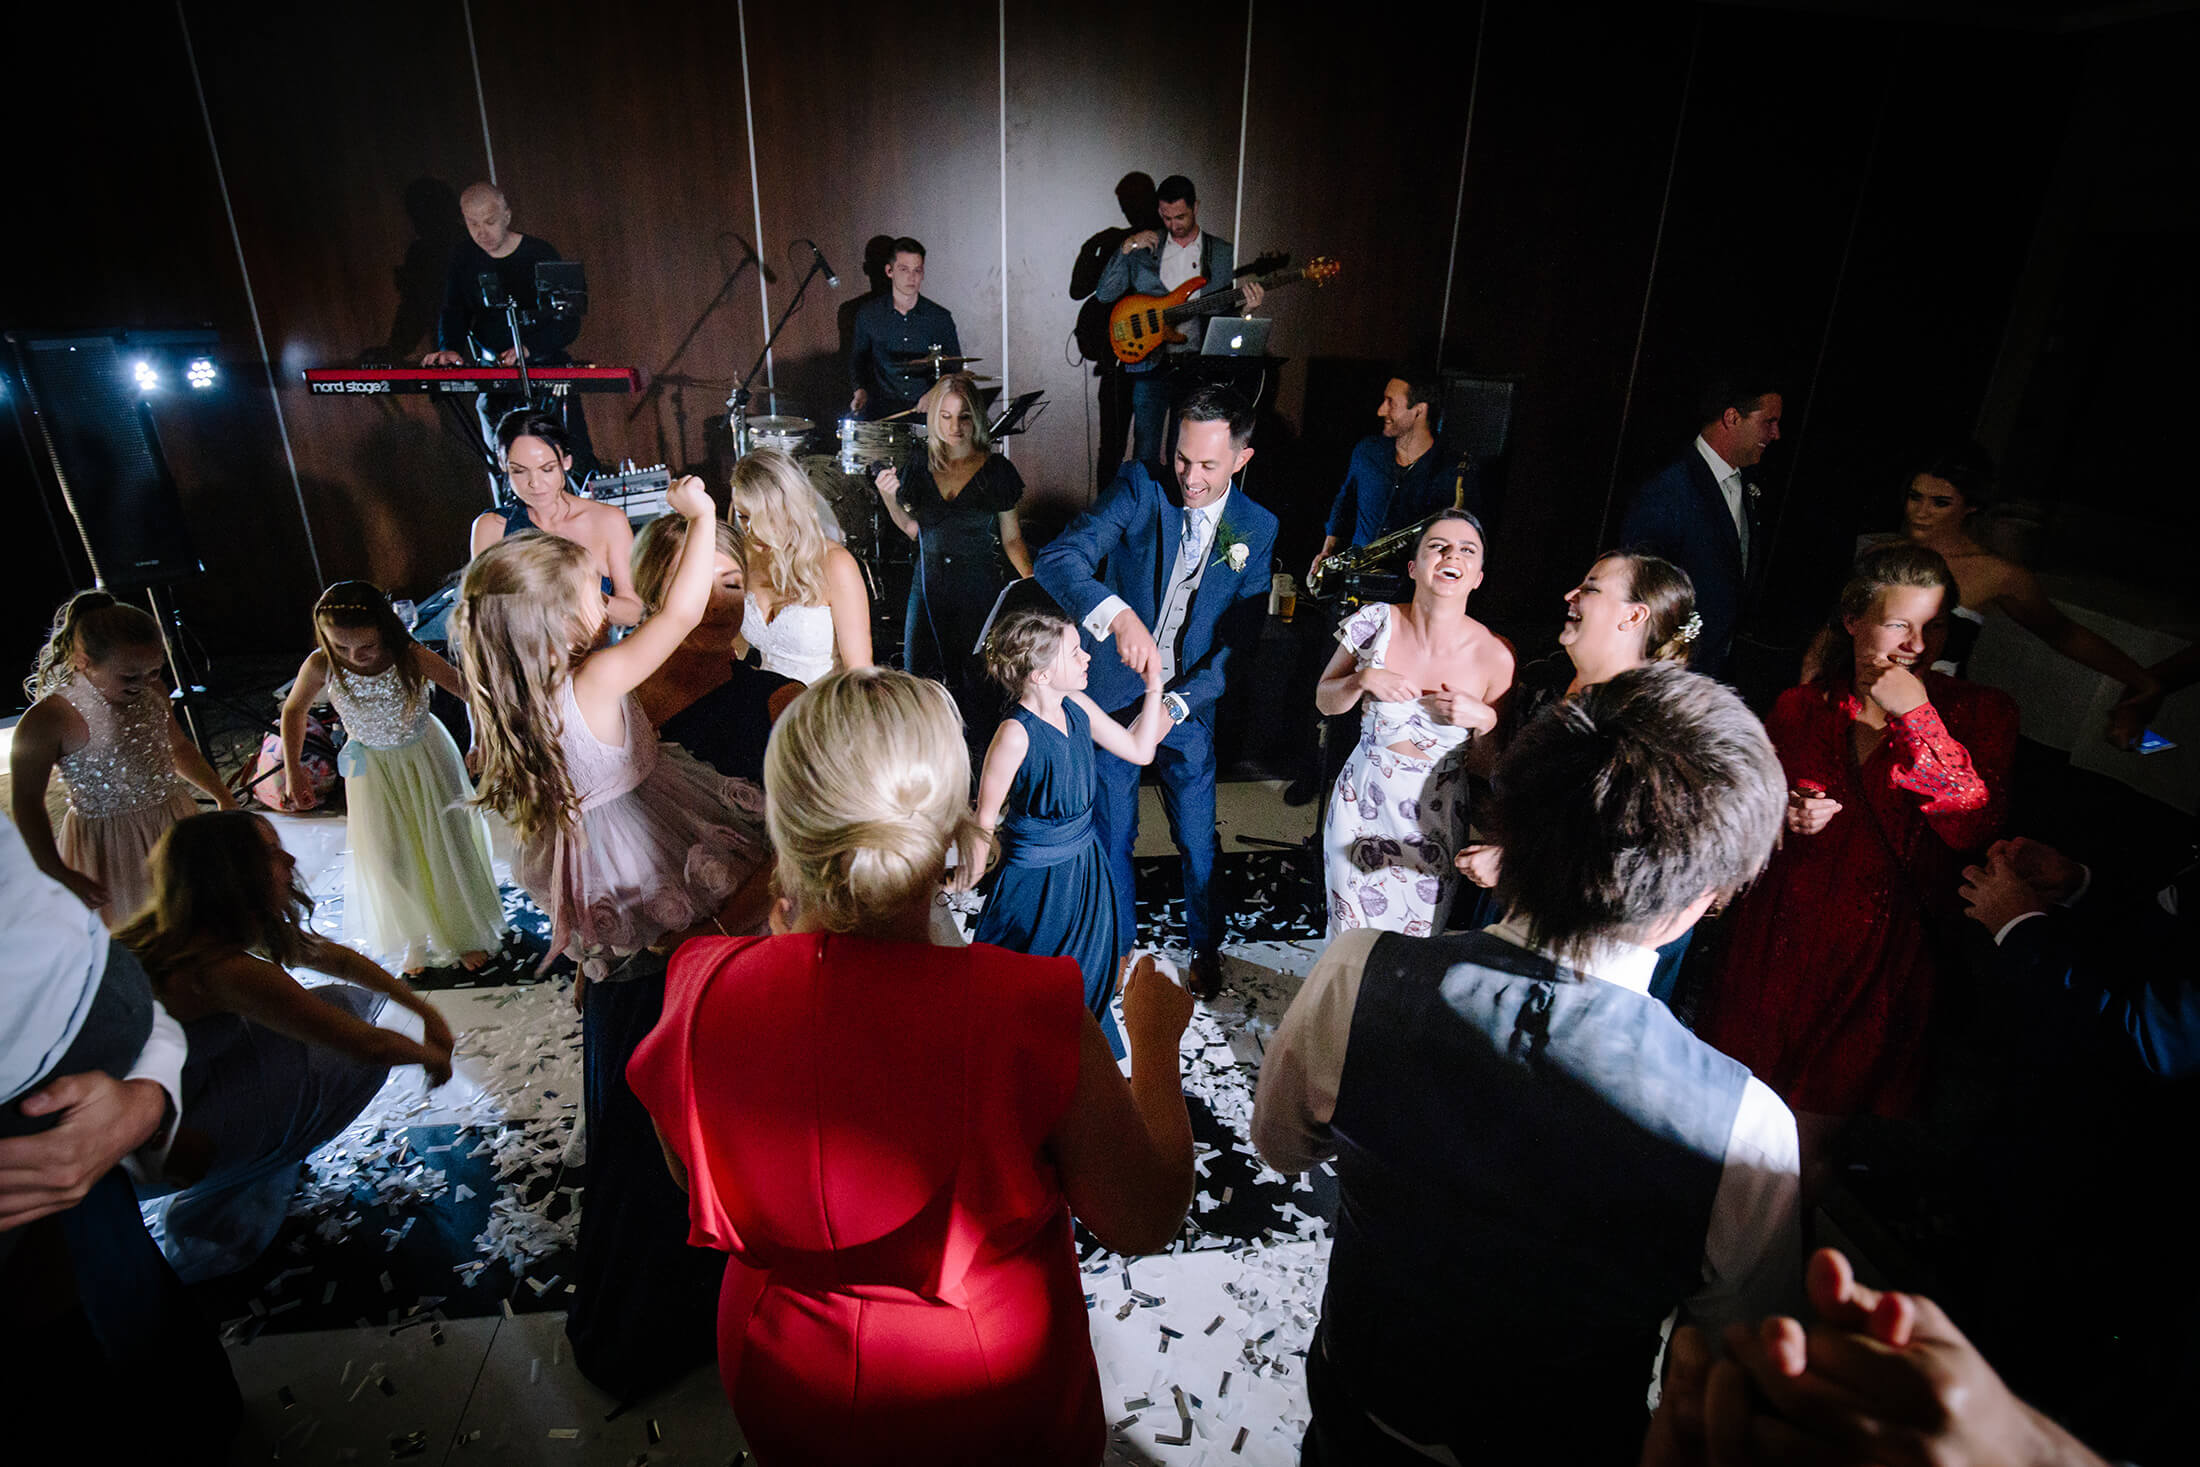 The bride and groom dance with guests after their wedding at the Mere Golf Resort & Spa in Cheshire. Mere Resort Wedding Photographer